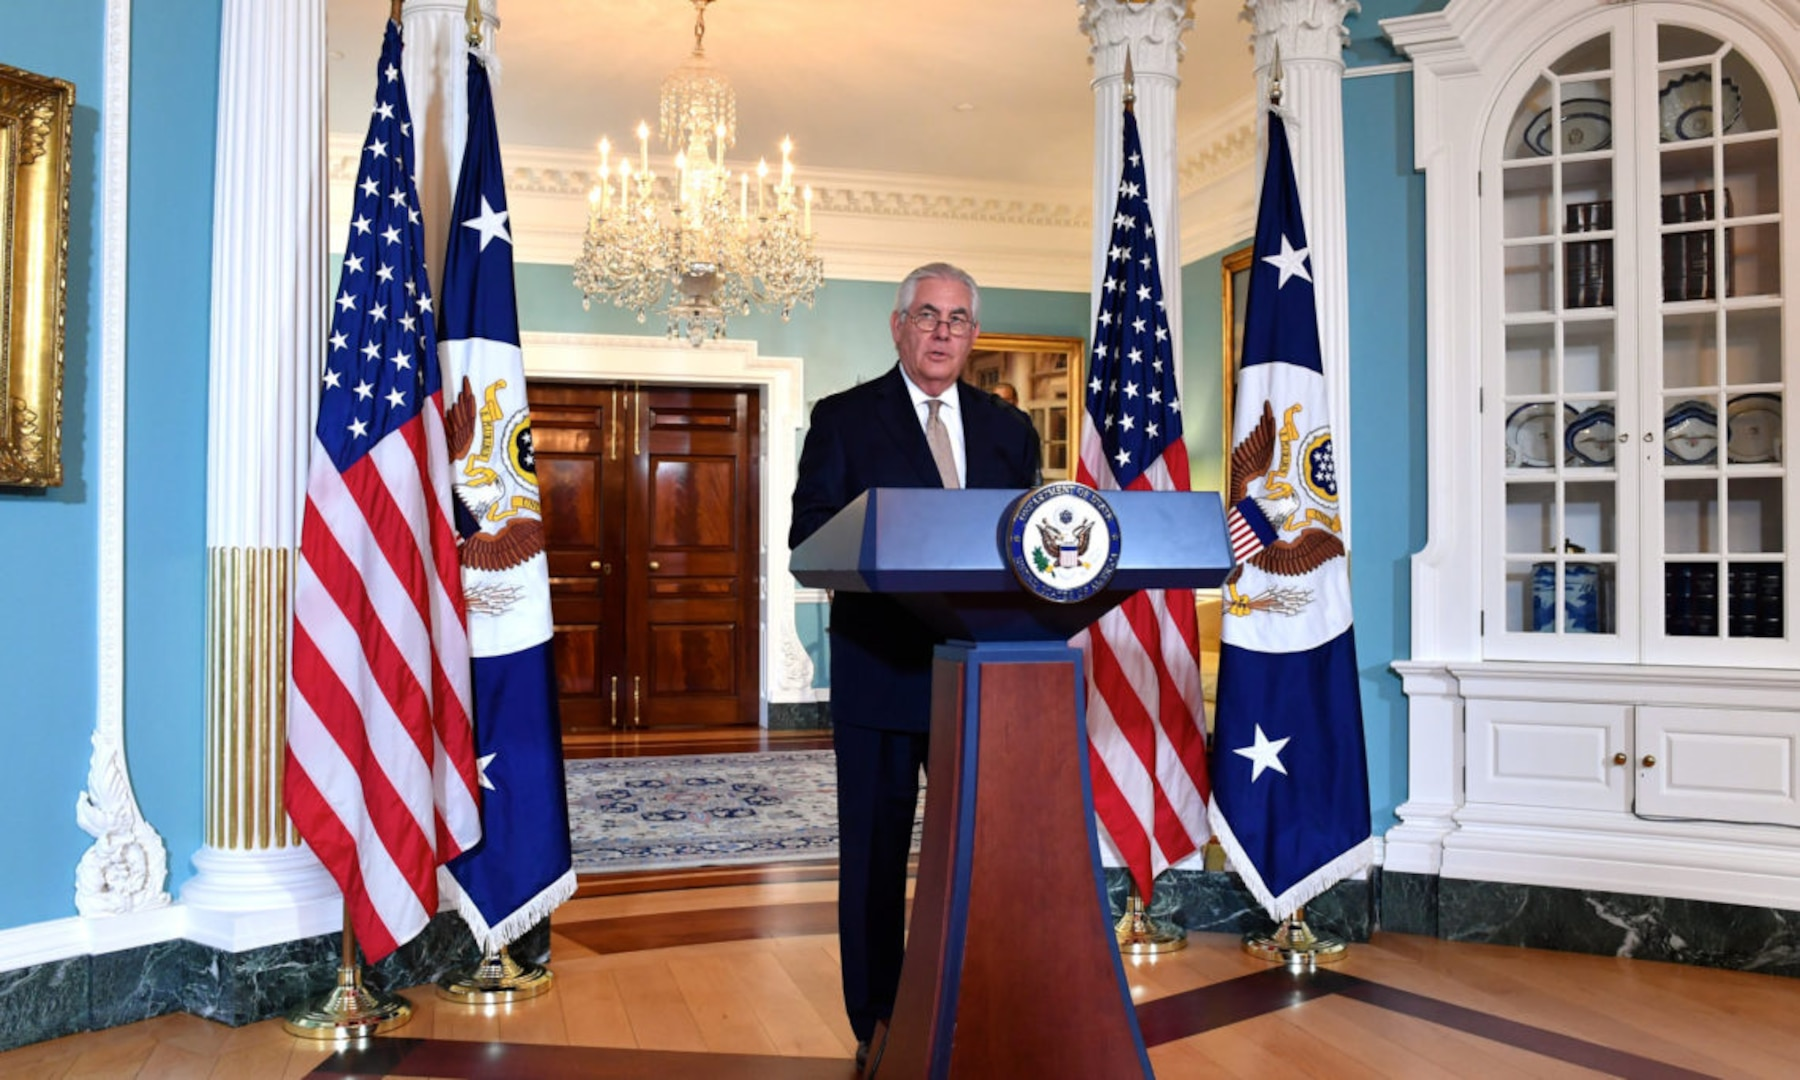 Statement by Secretary Tillerson: U.S. Condemns North Korean Missile Launch, July 4, 2017